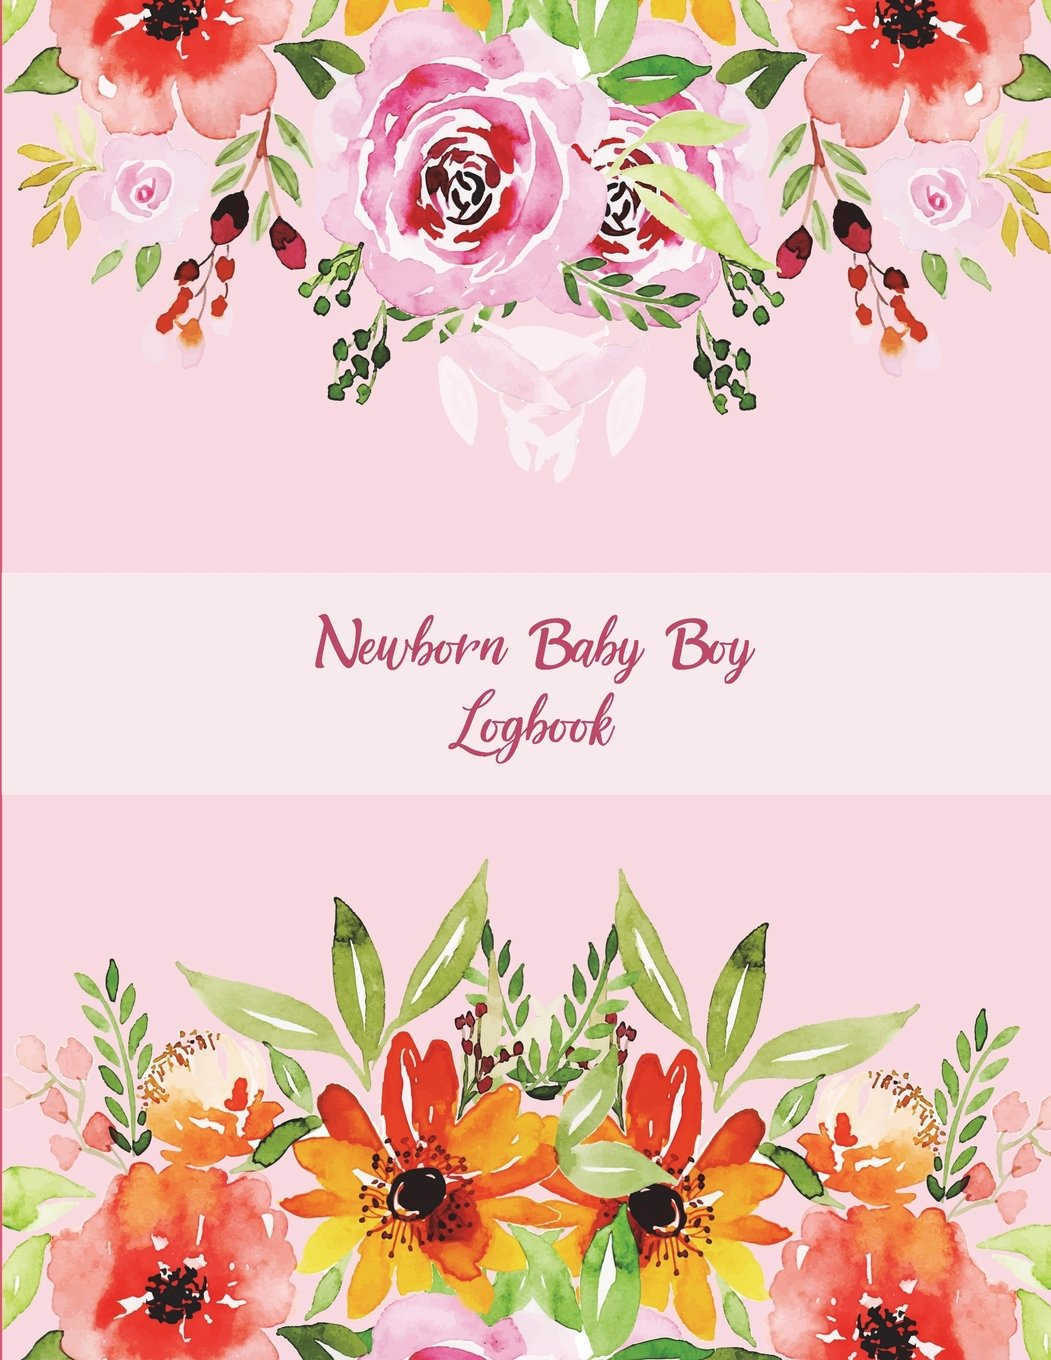 """Newborn Baby Boy Logbook: Floral Design, Baby's Eat, Sleep, Poop Schedule Log Journal Large Size 8.5"""" x 11"""" Child's Health Record Keeper, Baby Health Record Notebook, Meal & Diapers Recorder ebook"""